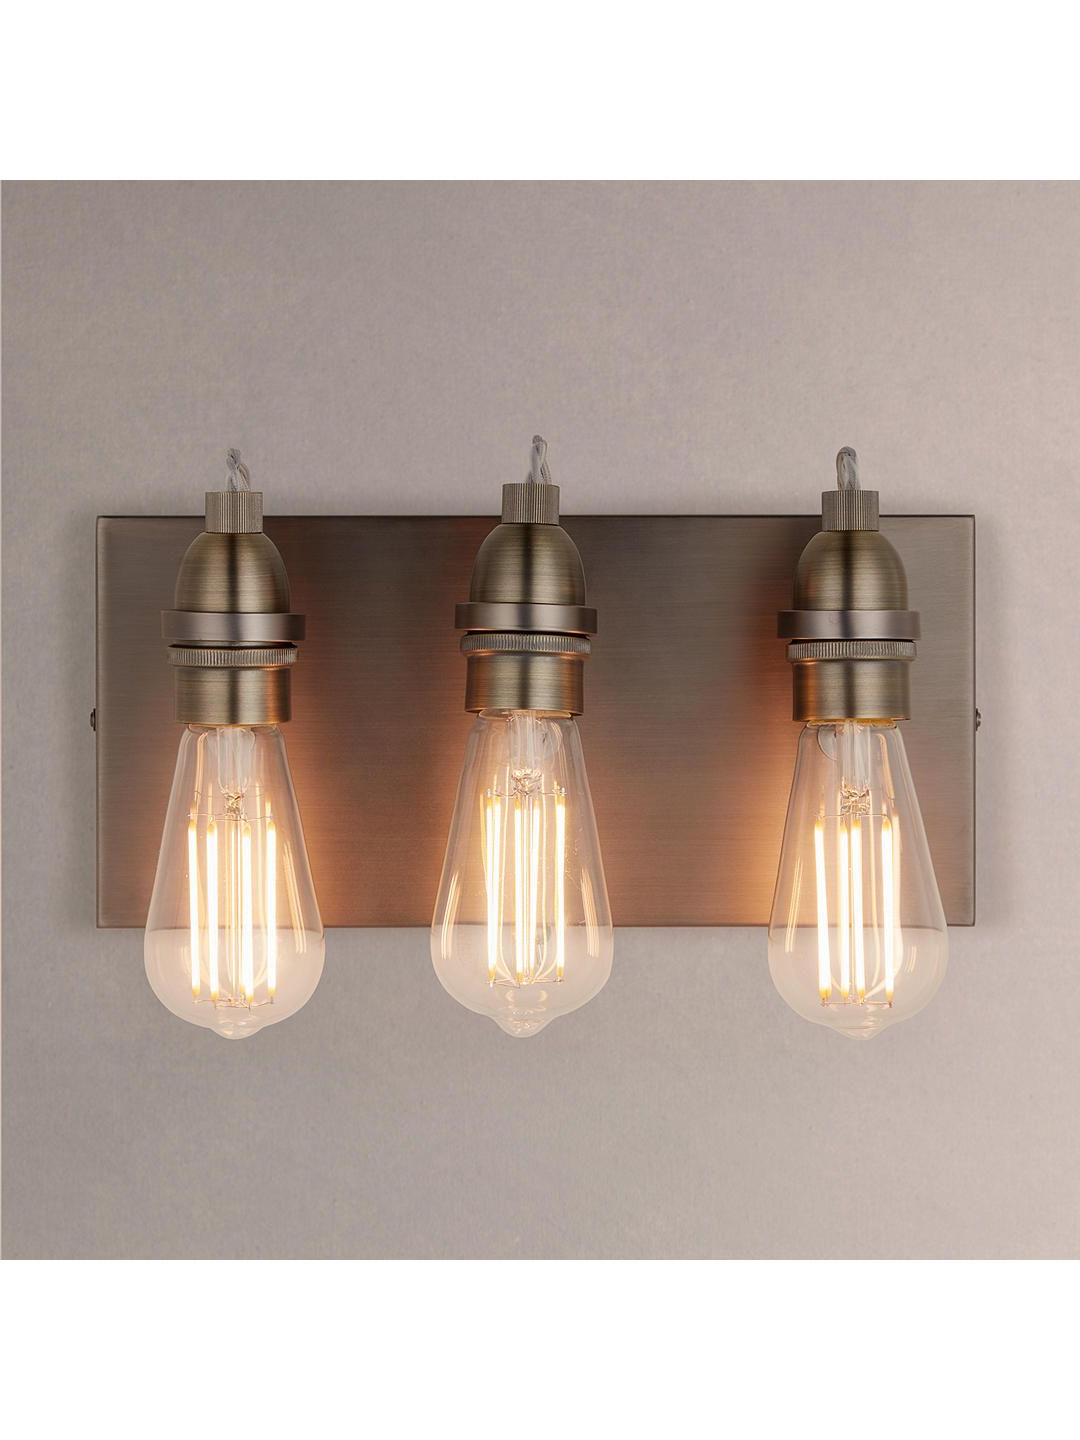 Amara 3 Light Dome Pendants For Popular John Lewis & Partners Bistro 3 Arm Wall Light, Antique Brass (View 20 of 25)